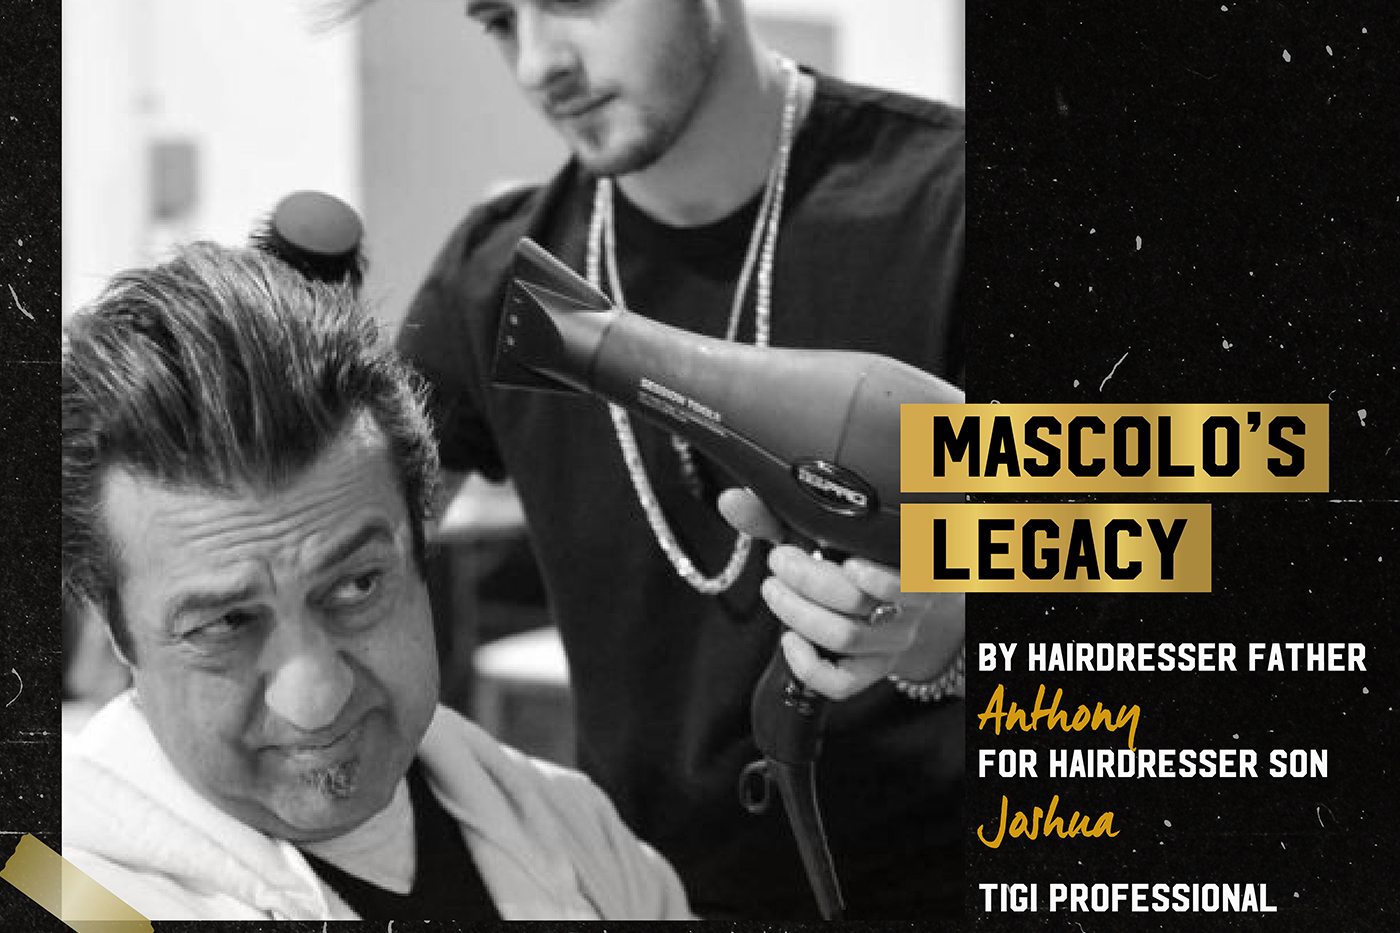 TIGI India makes Father's Day special for father-daughter/son hairdresser duos